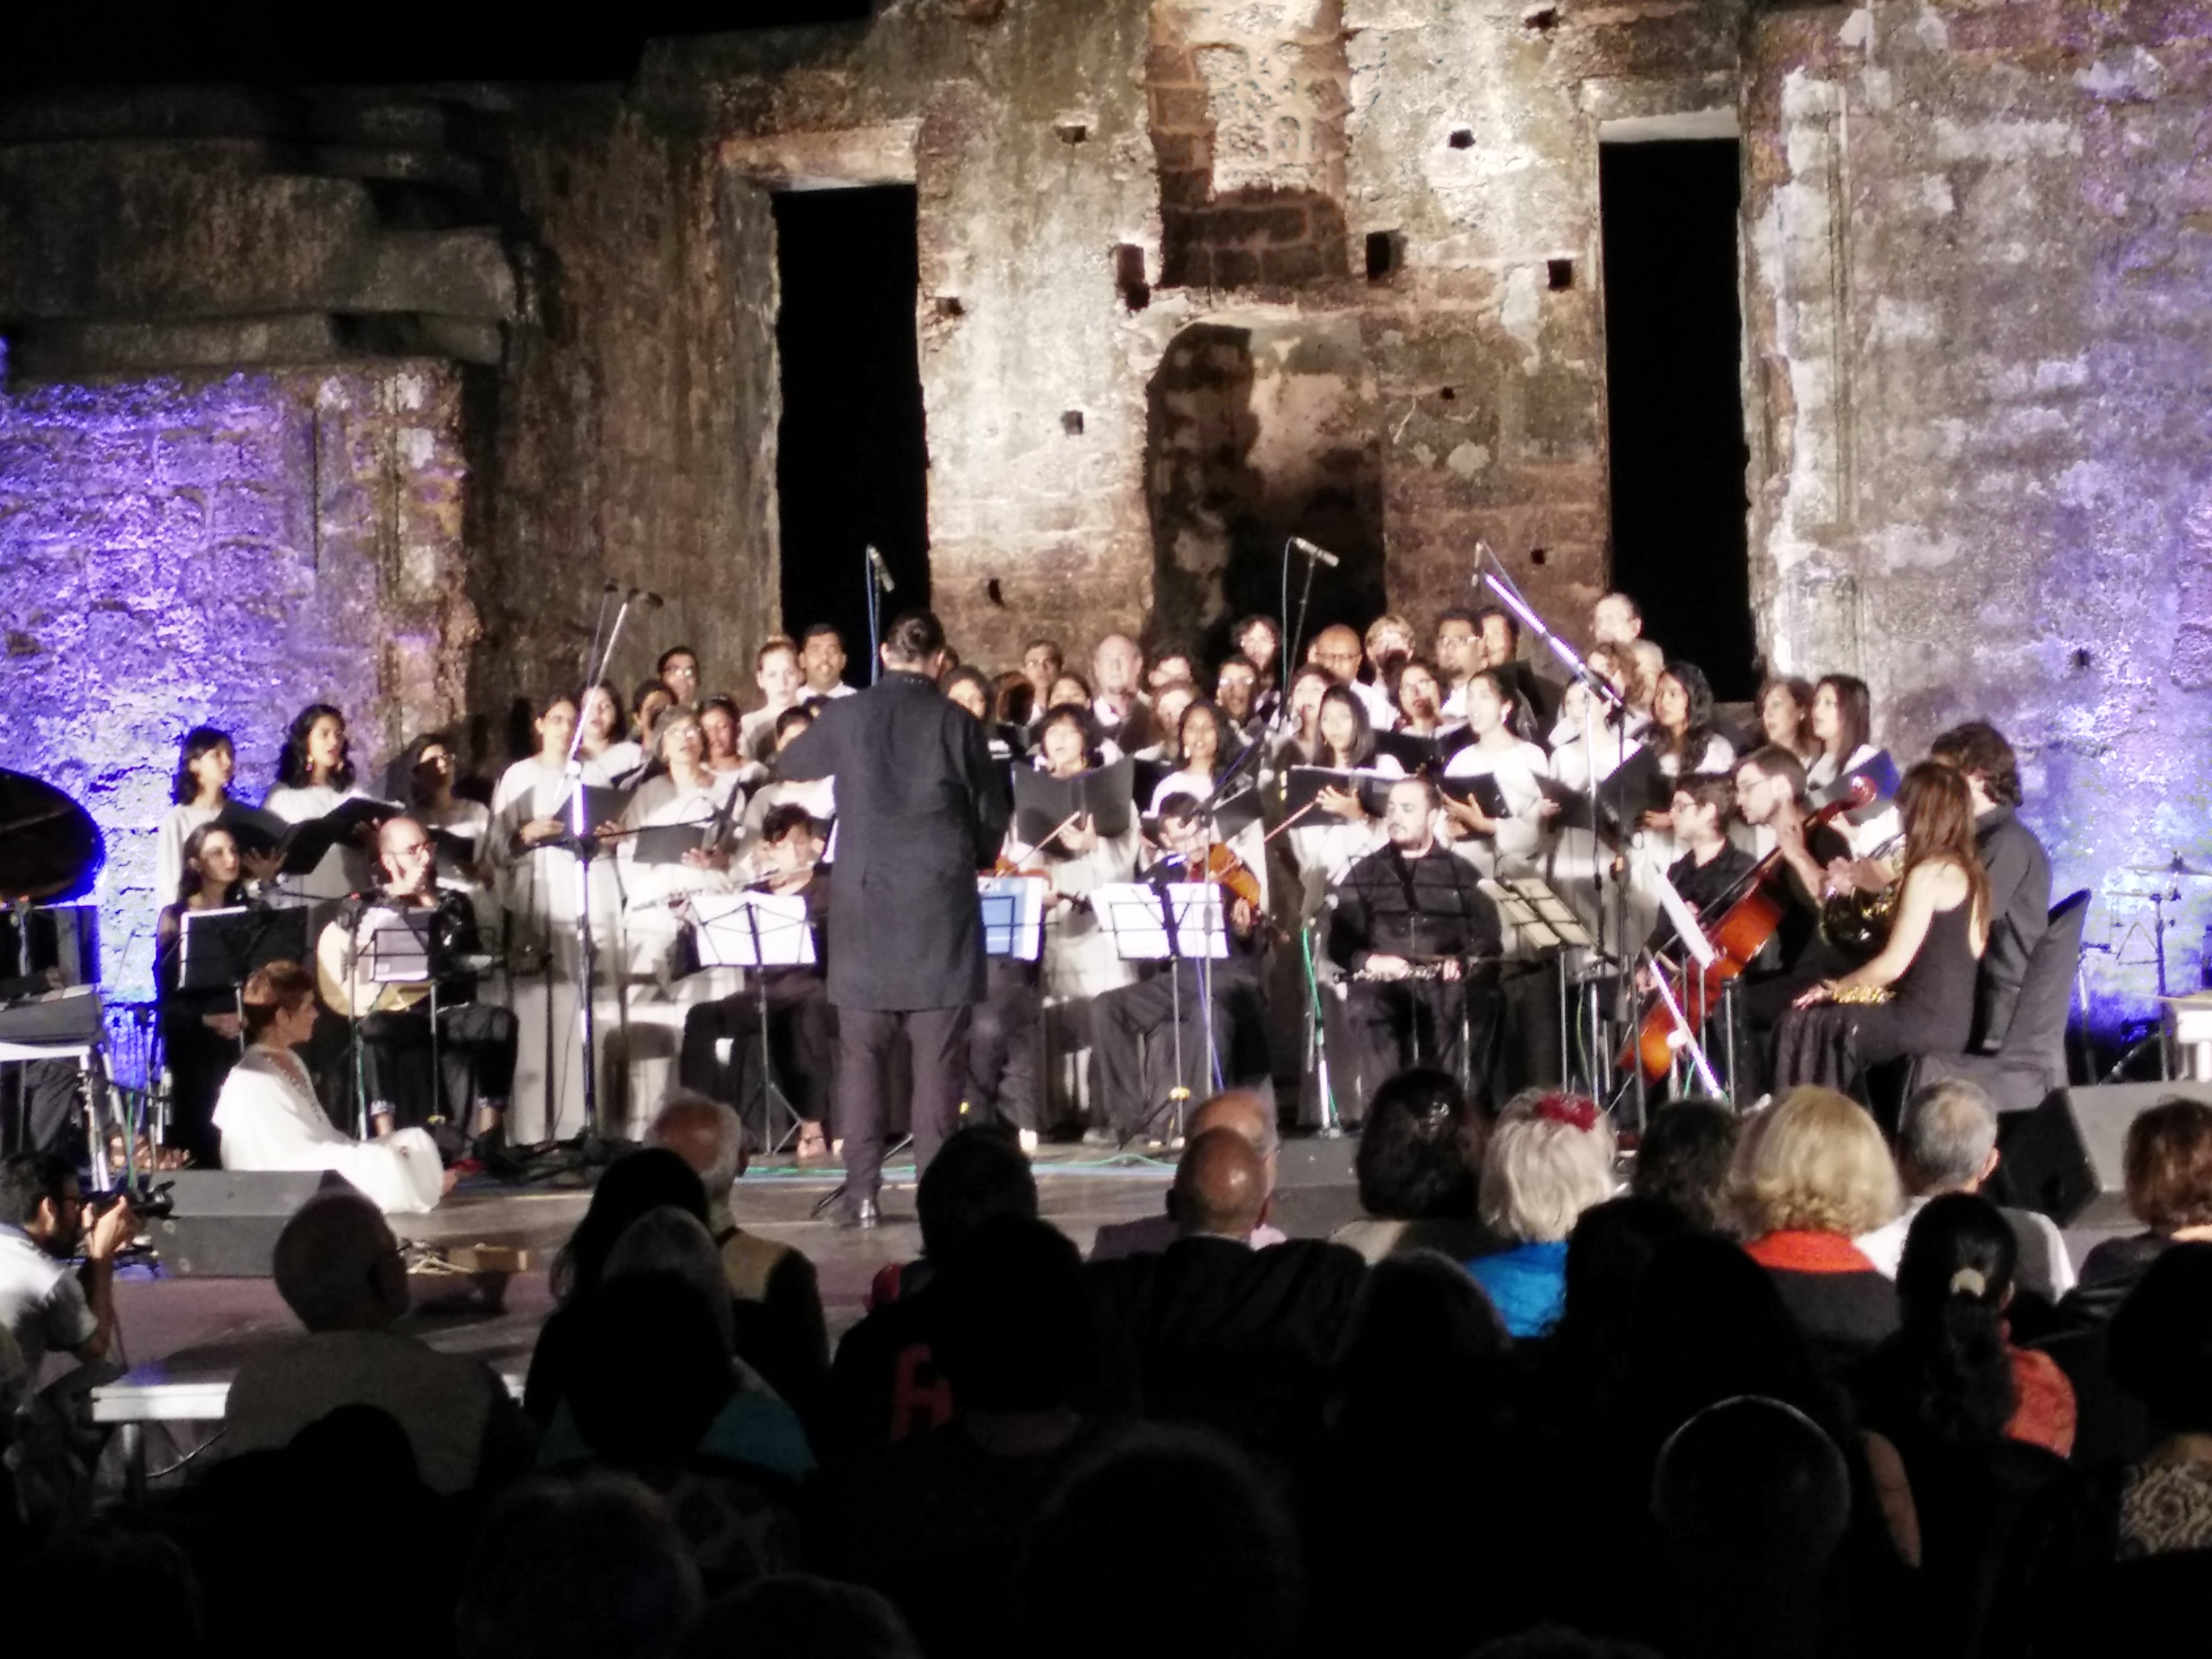 The Goa University and Seville University choirs perform at St Augustine ruins